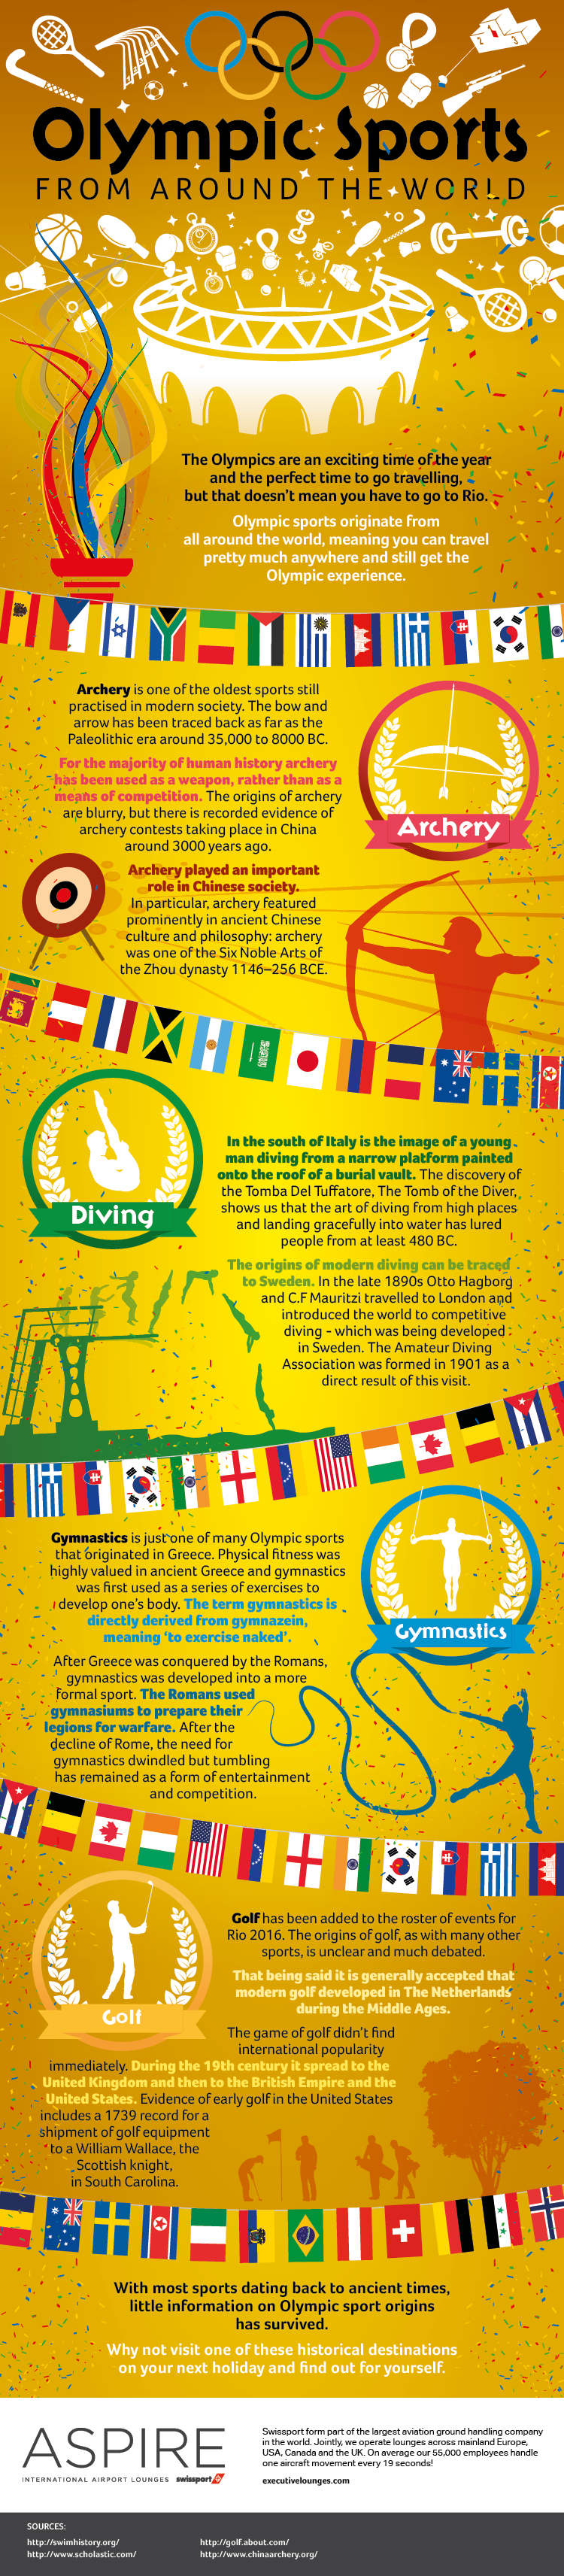 Olympic sports from around the world infographic